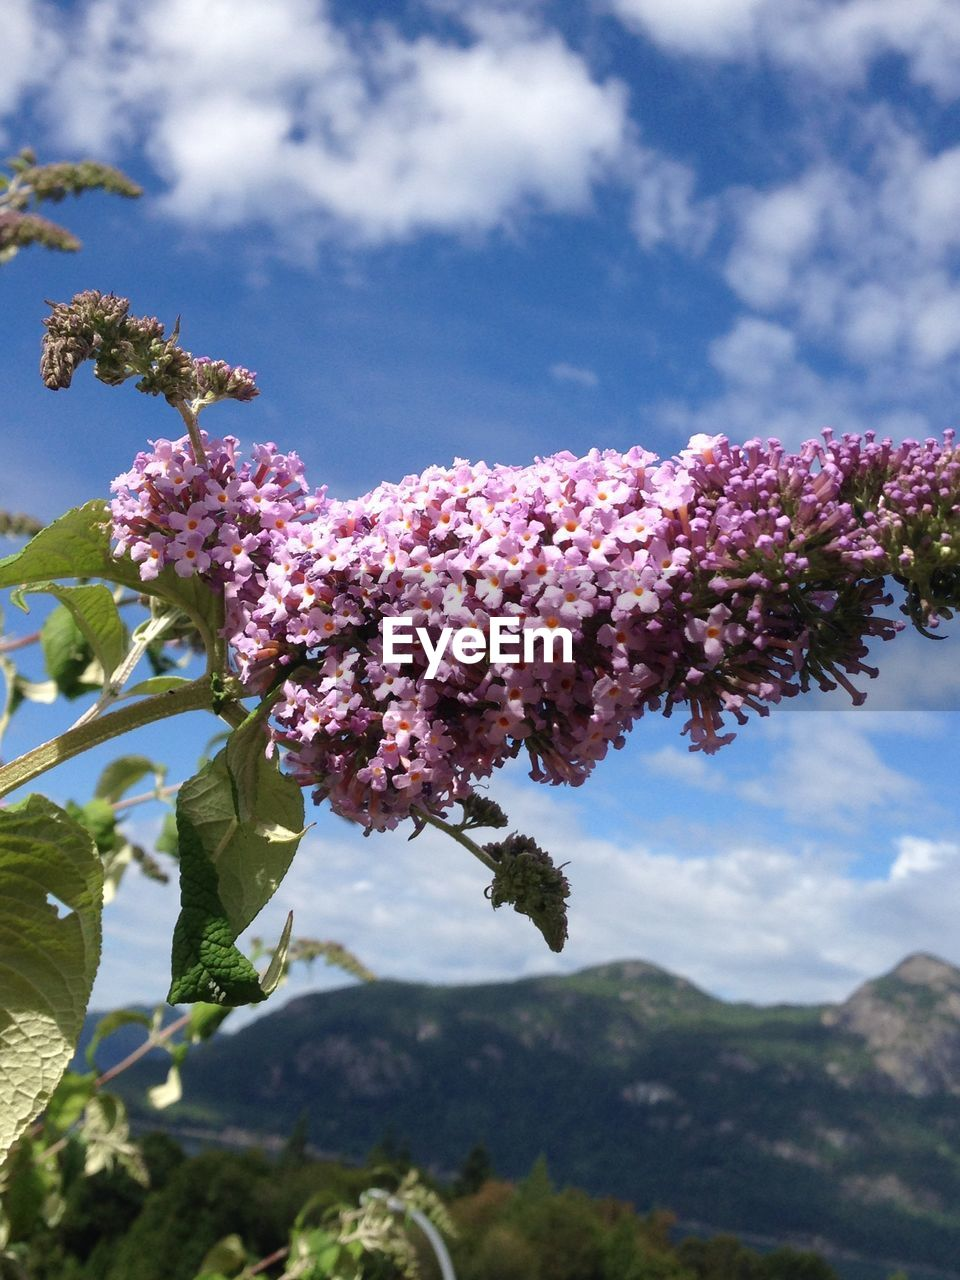 growth, beauty in nature, nature, flower, fragility, freshness, day, tree, no people, sky, outdoors, low angle view, cloud - sky, close-up, pink color, focus on foreground, plant, petal, blooming, branch, flower head